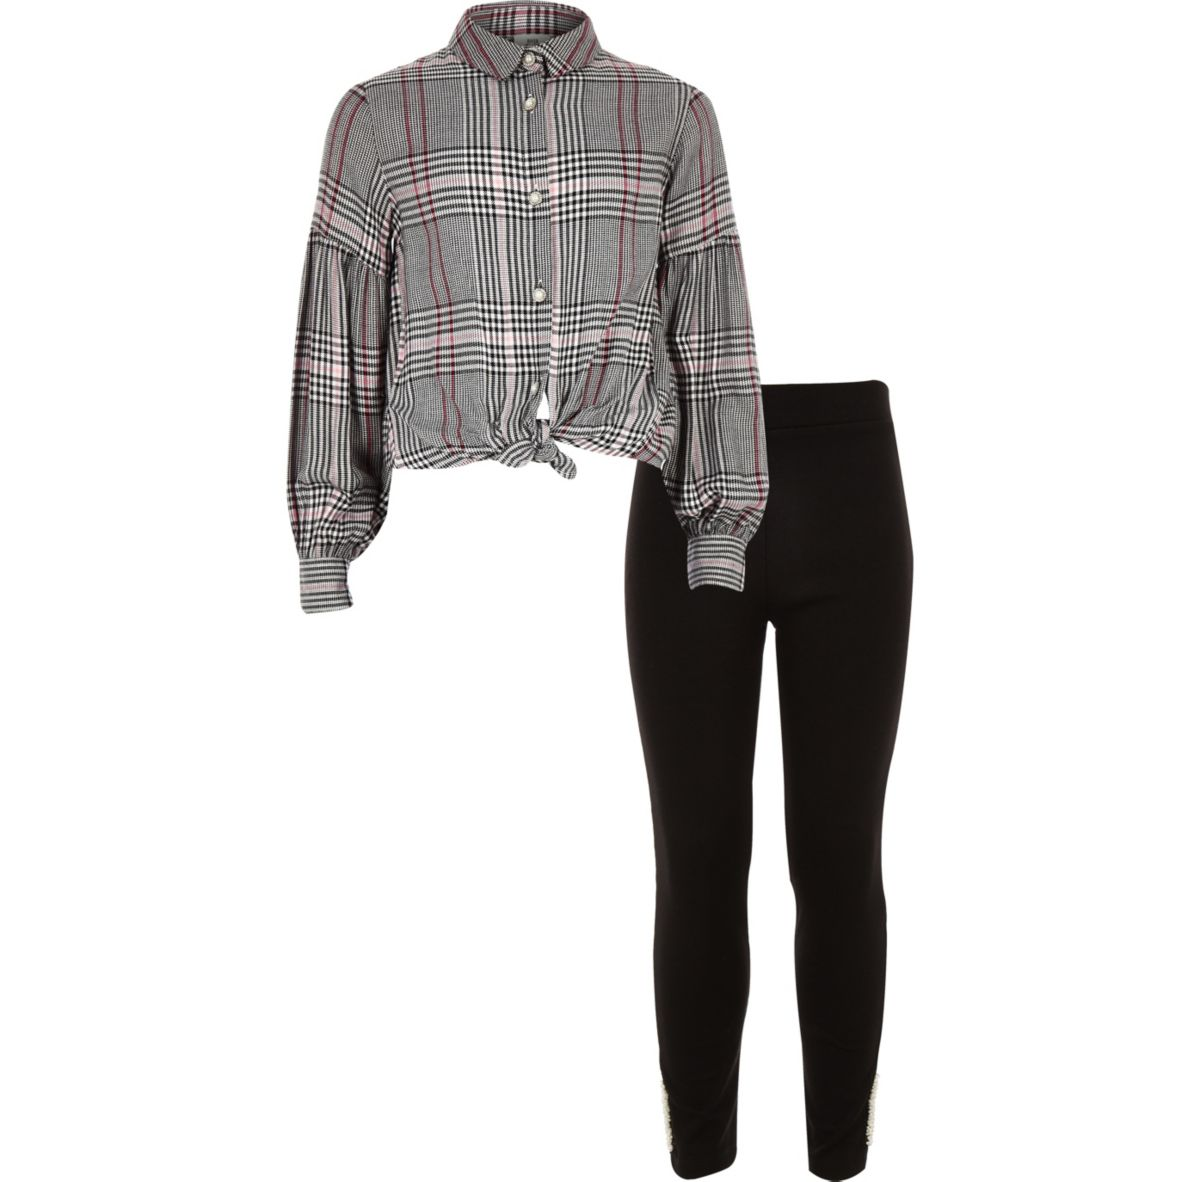 Girls pink check shirt and leggings outfit